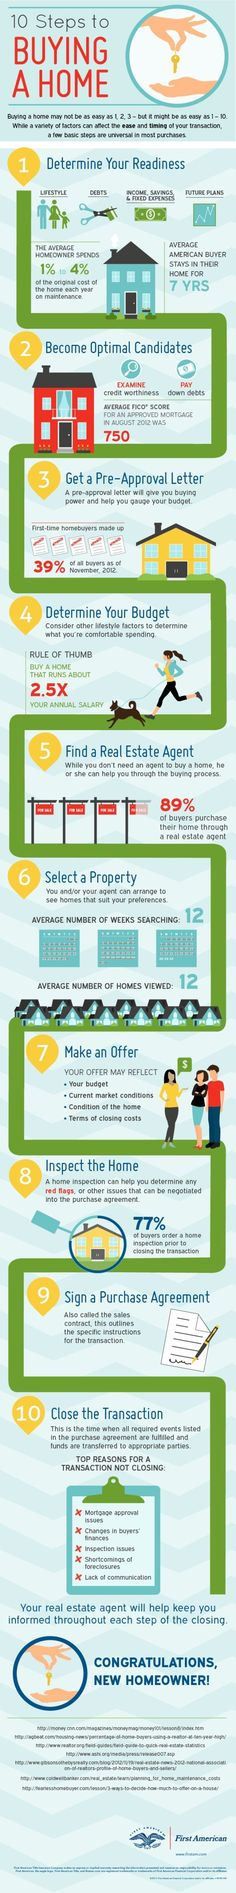 10 Steps to Buying a Home Infographic First American Title buy a home buying your first home #homeowner